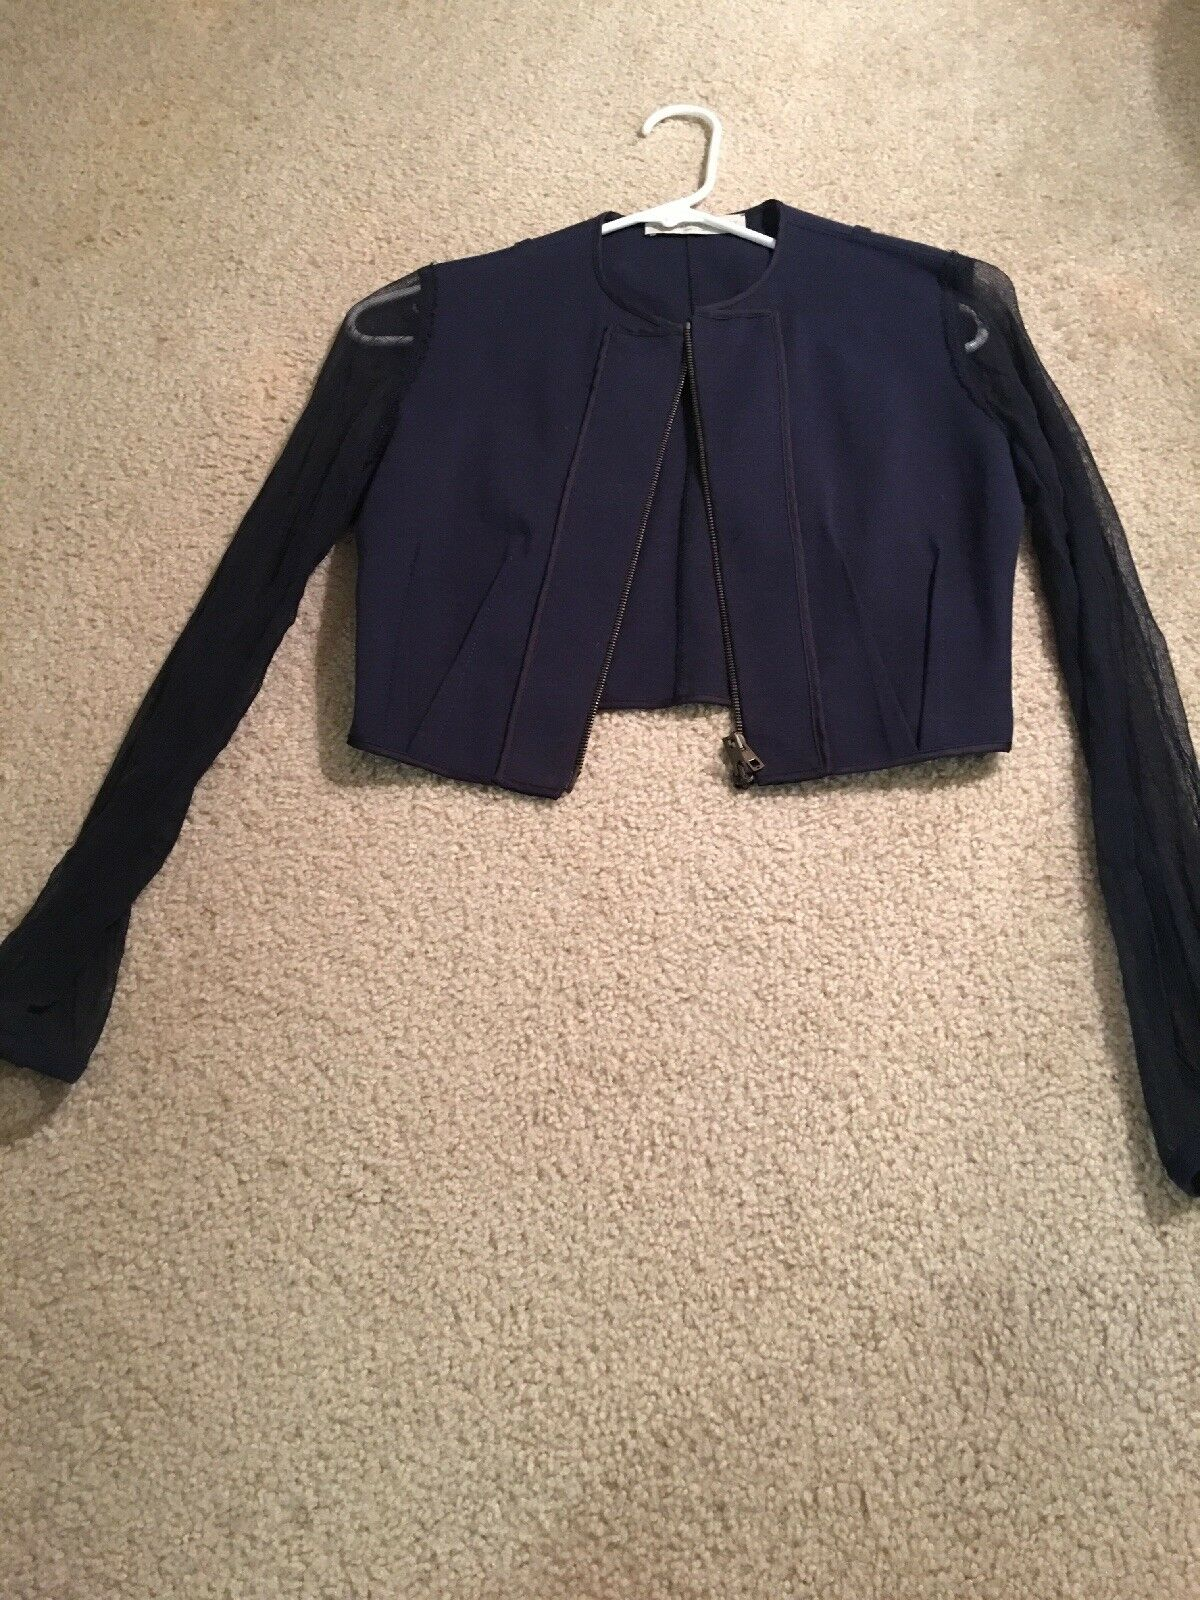 Stella McCartney Navy Blau top (Größe 38) pre-owned